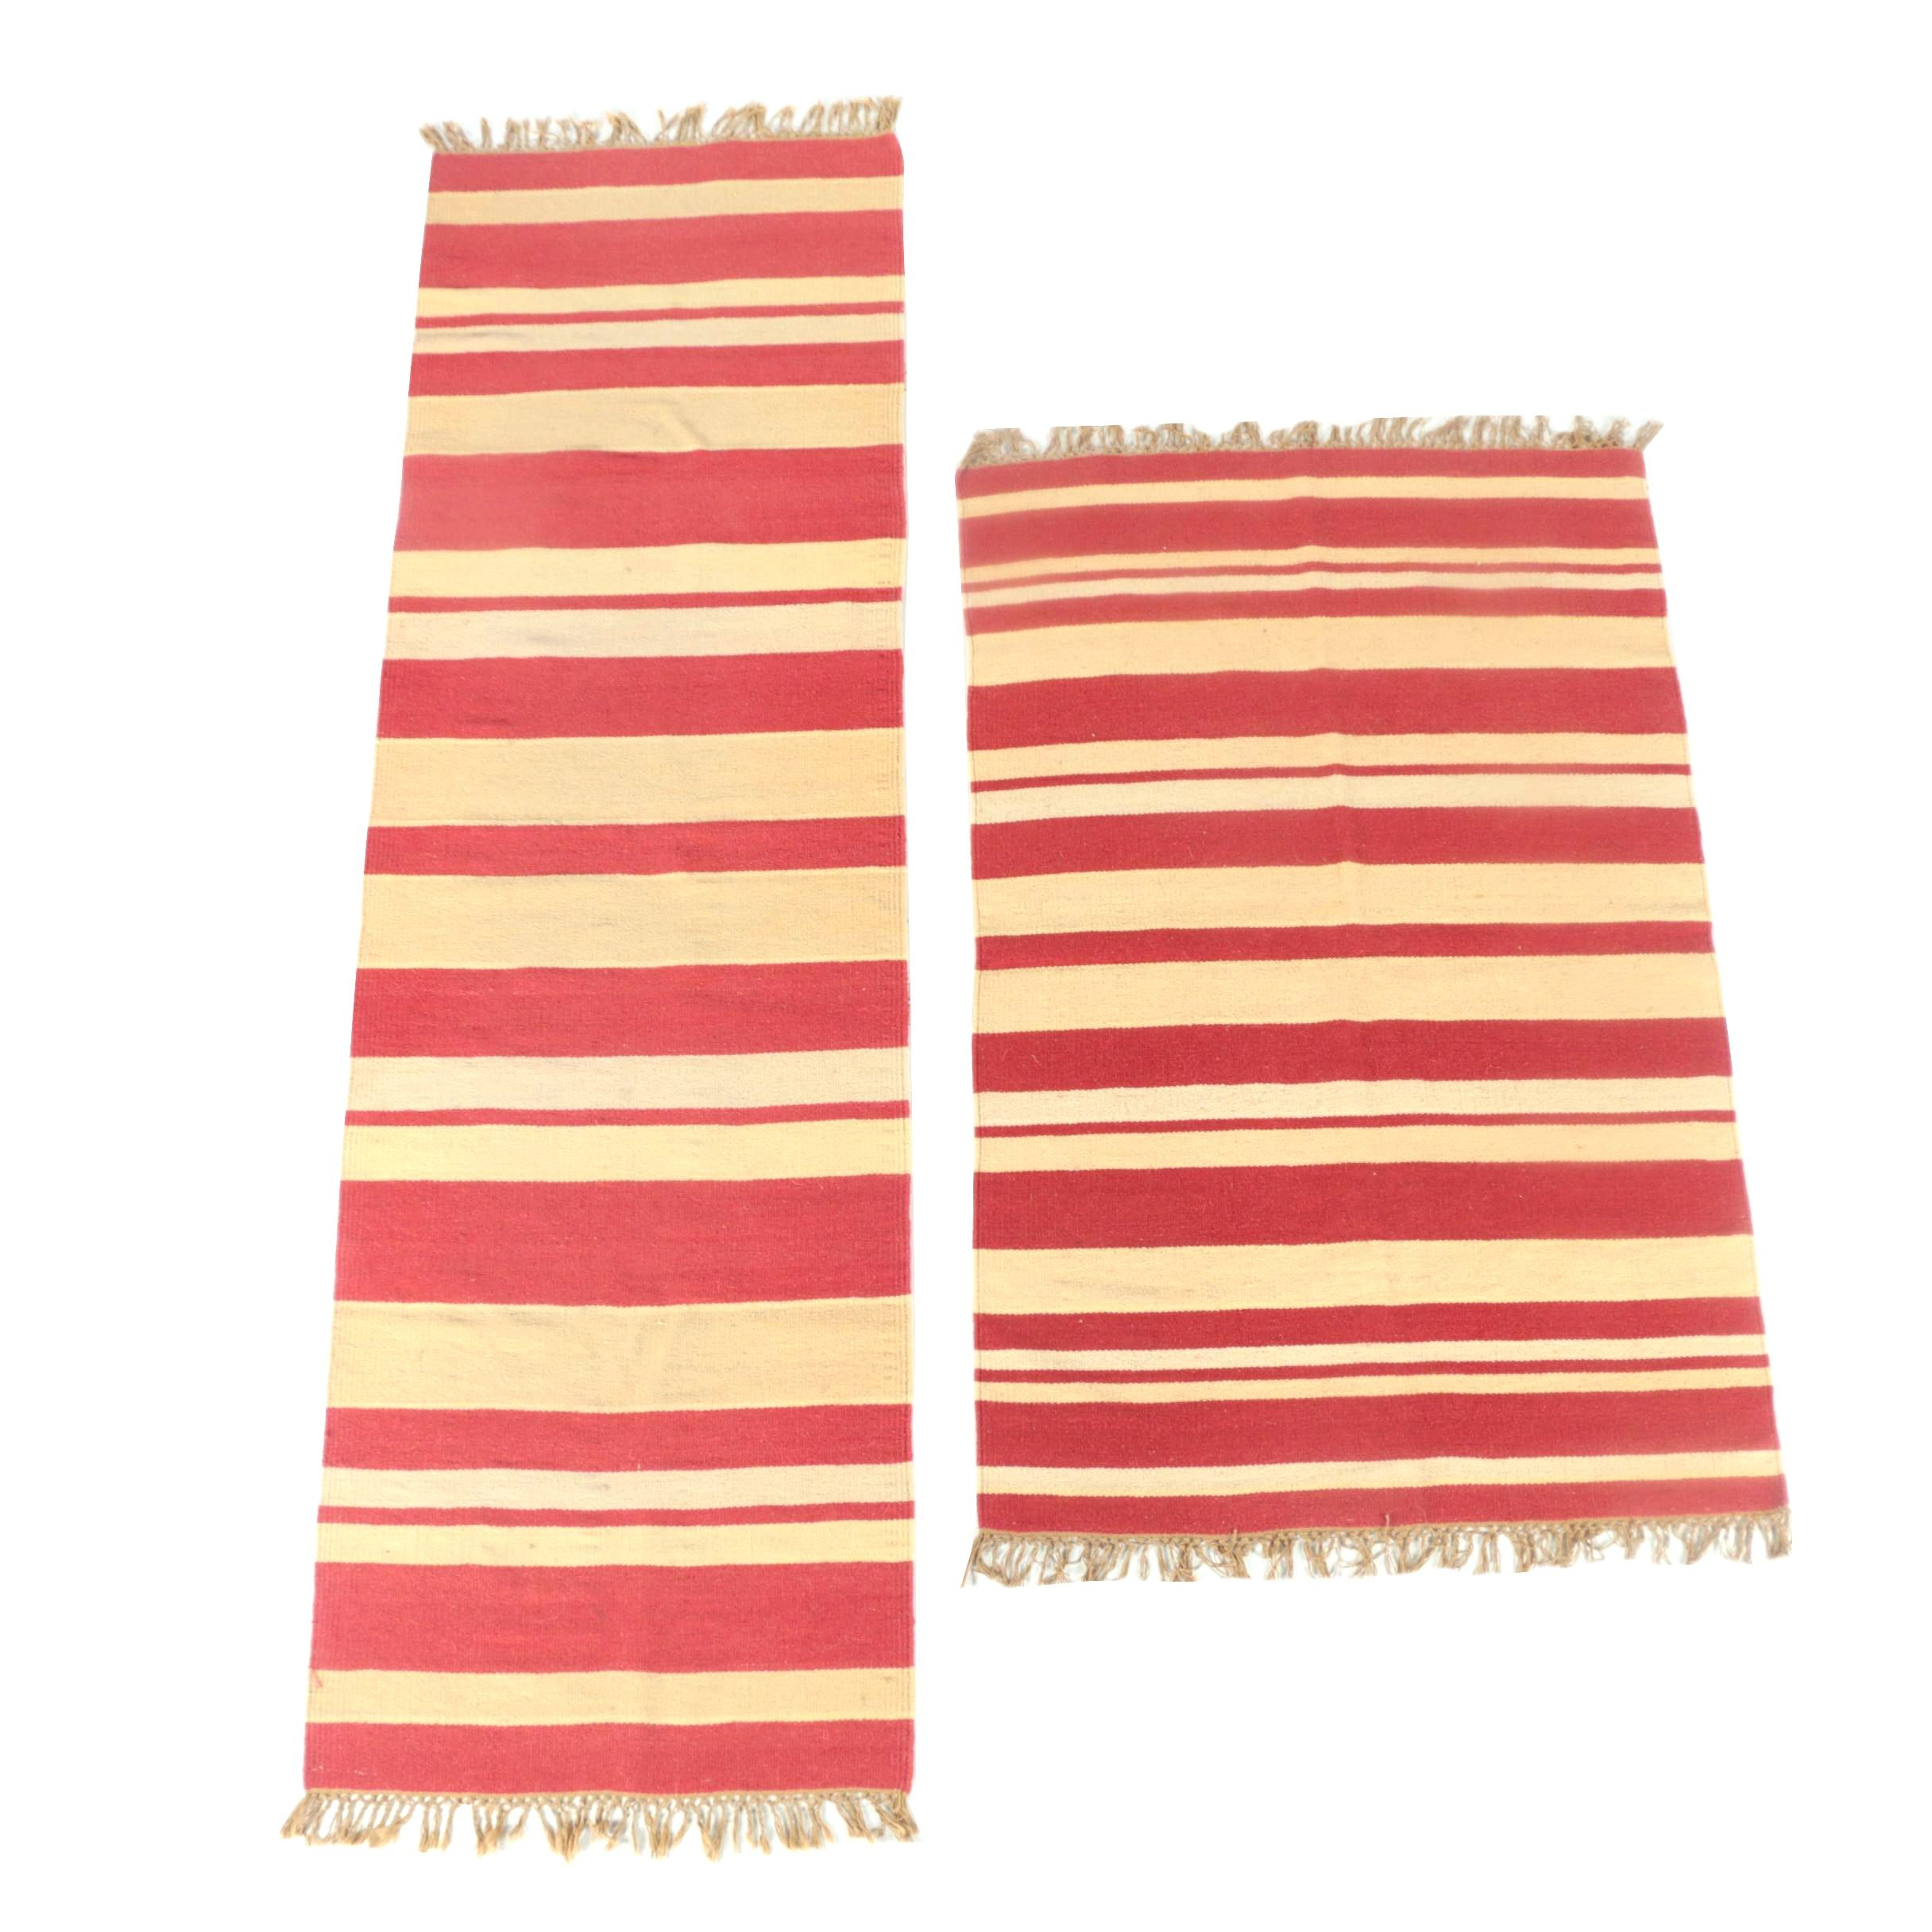 """Handwoven Indian """"Chelsea Stripe"""" Wool and Cotton Accent Rug and Runner"""